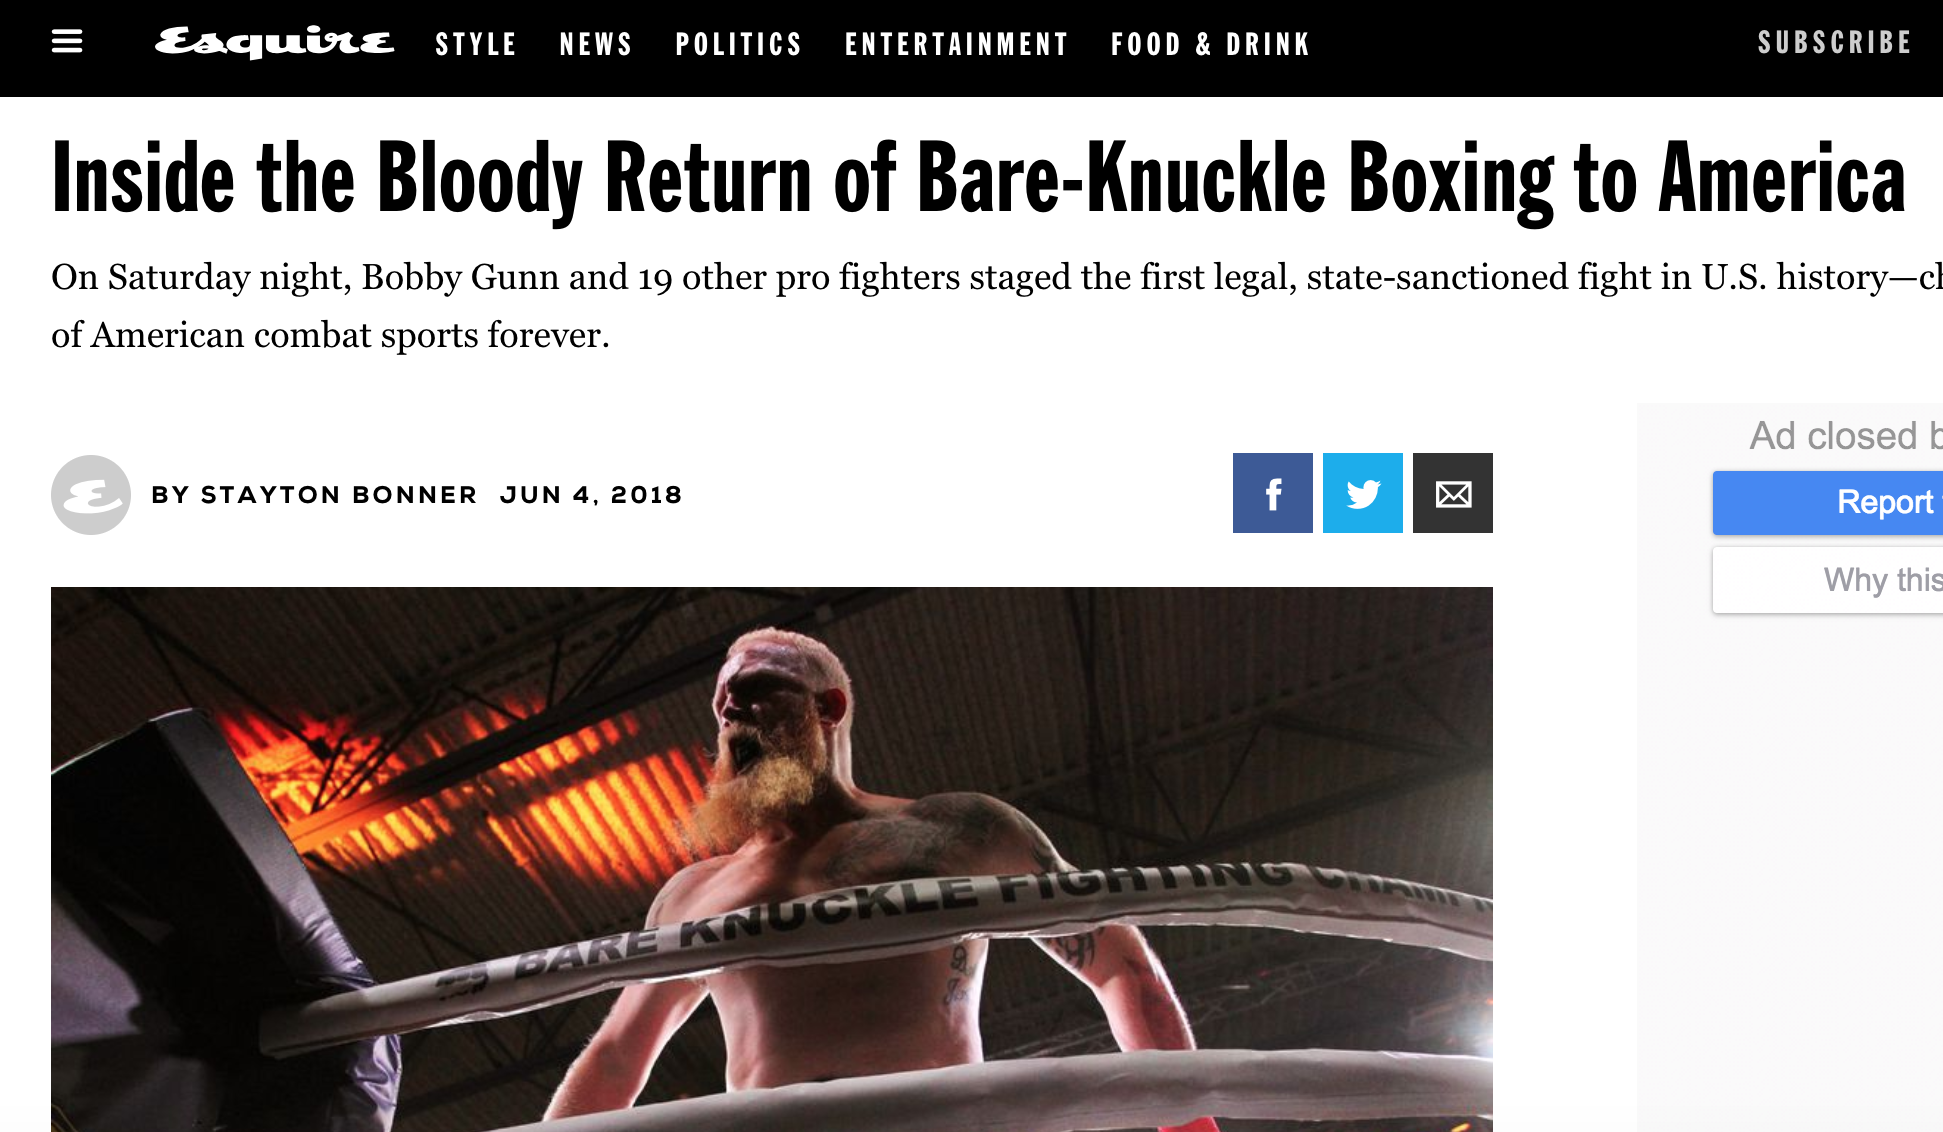 Esquire features an article about the bare knuckle fighting championship's first event in wyoming.